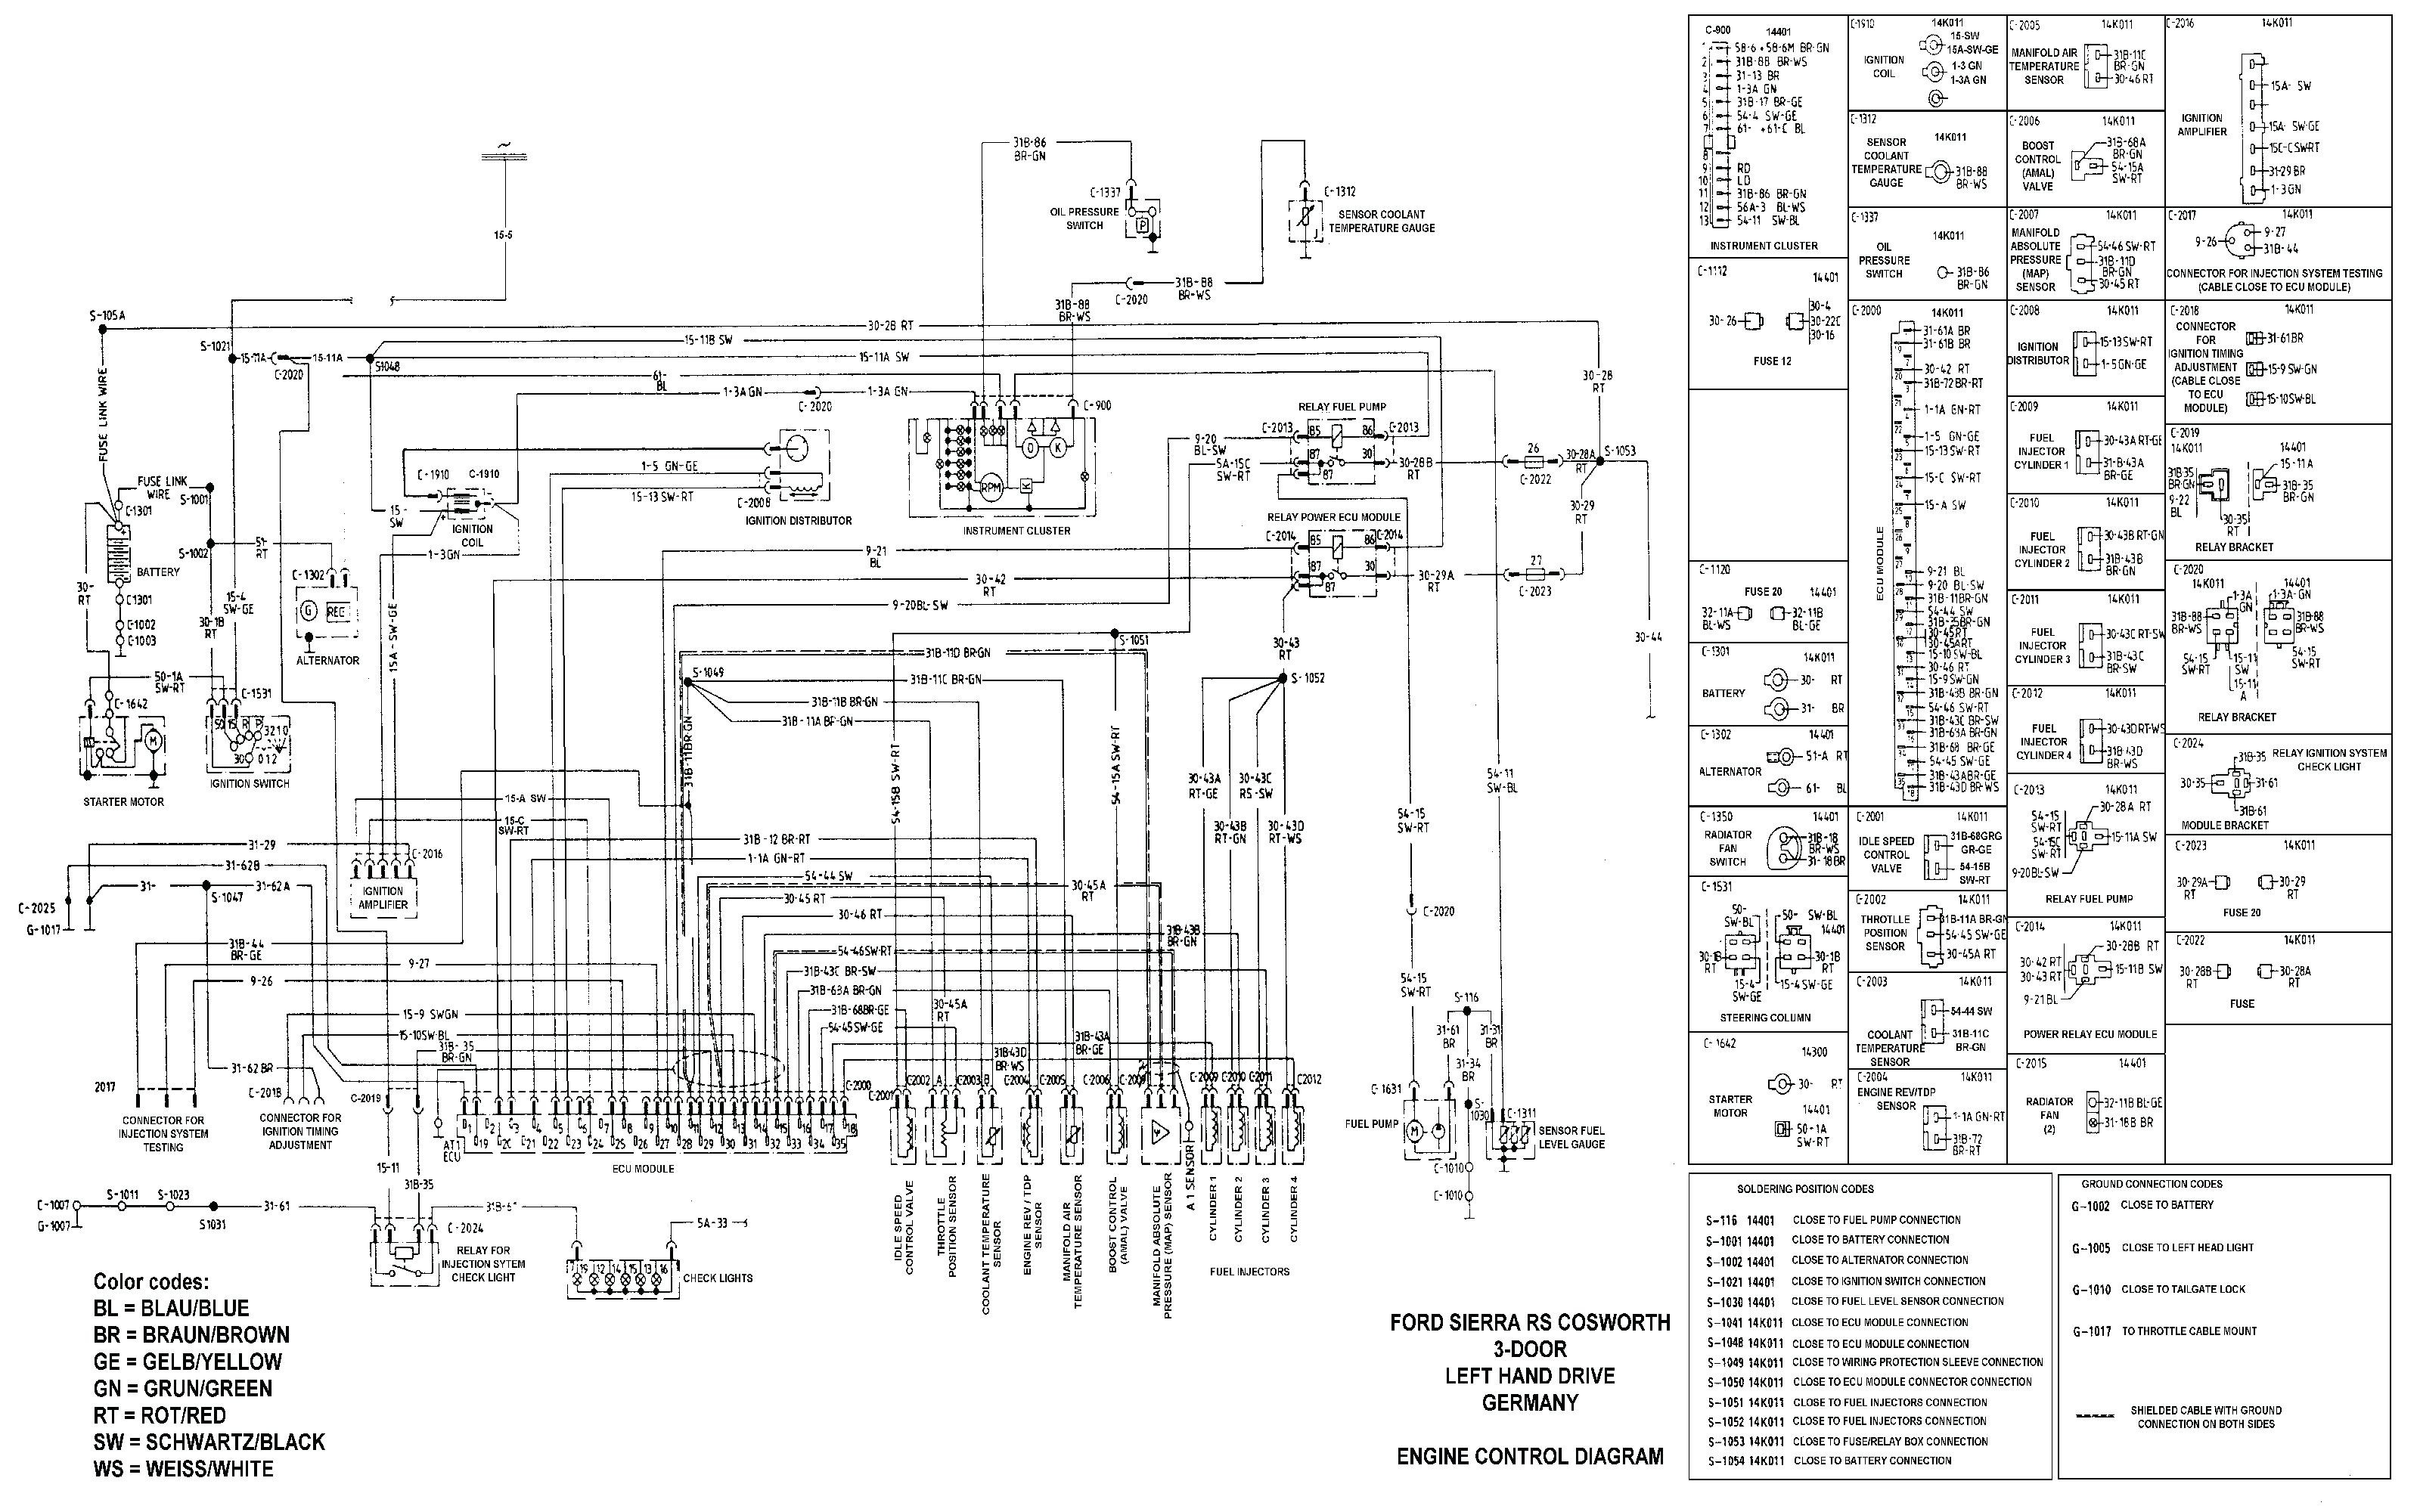 ford fusion engine parts diagram wiring library 2009 Ford Escape TPMS Schematic Diagram 2010 ford escape engine diagram 2009 ford fusion engine diagram wiring diagrams data base of 2010